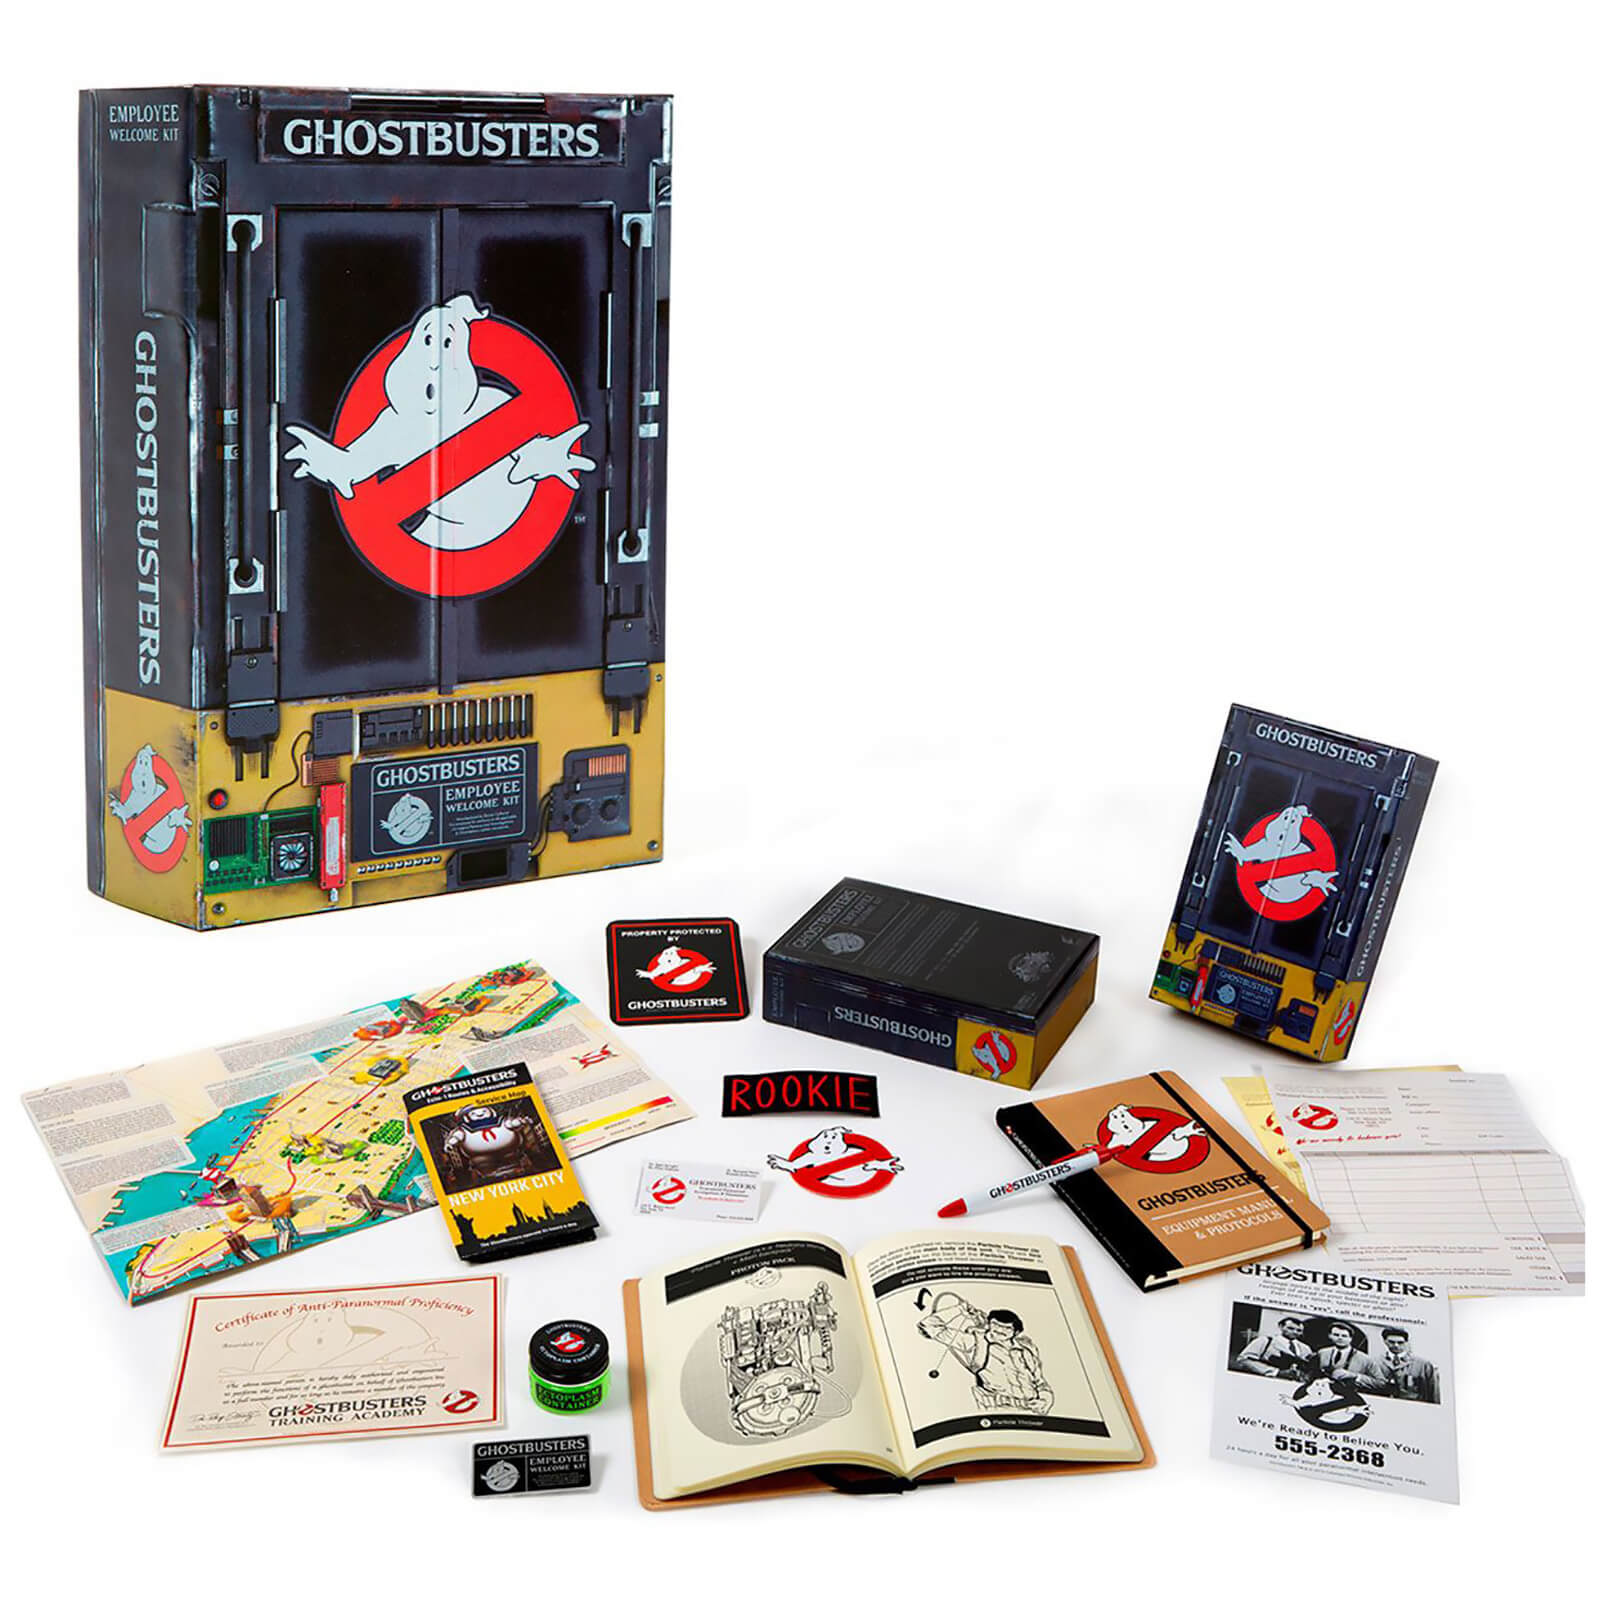 Image of Doctor Collector Ghostbusters Employee Welcome Kit